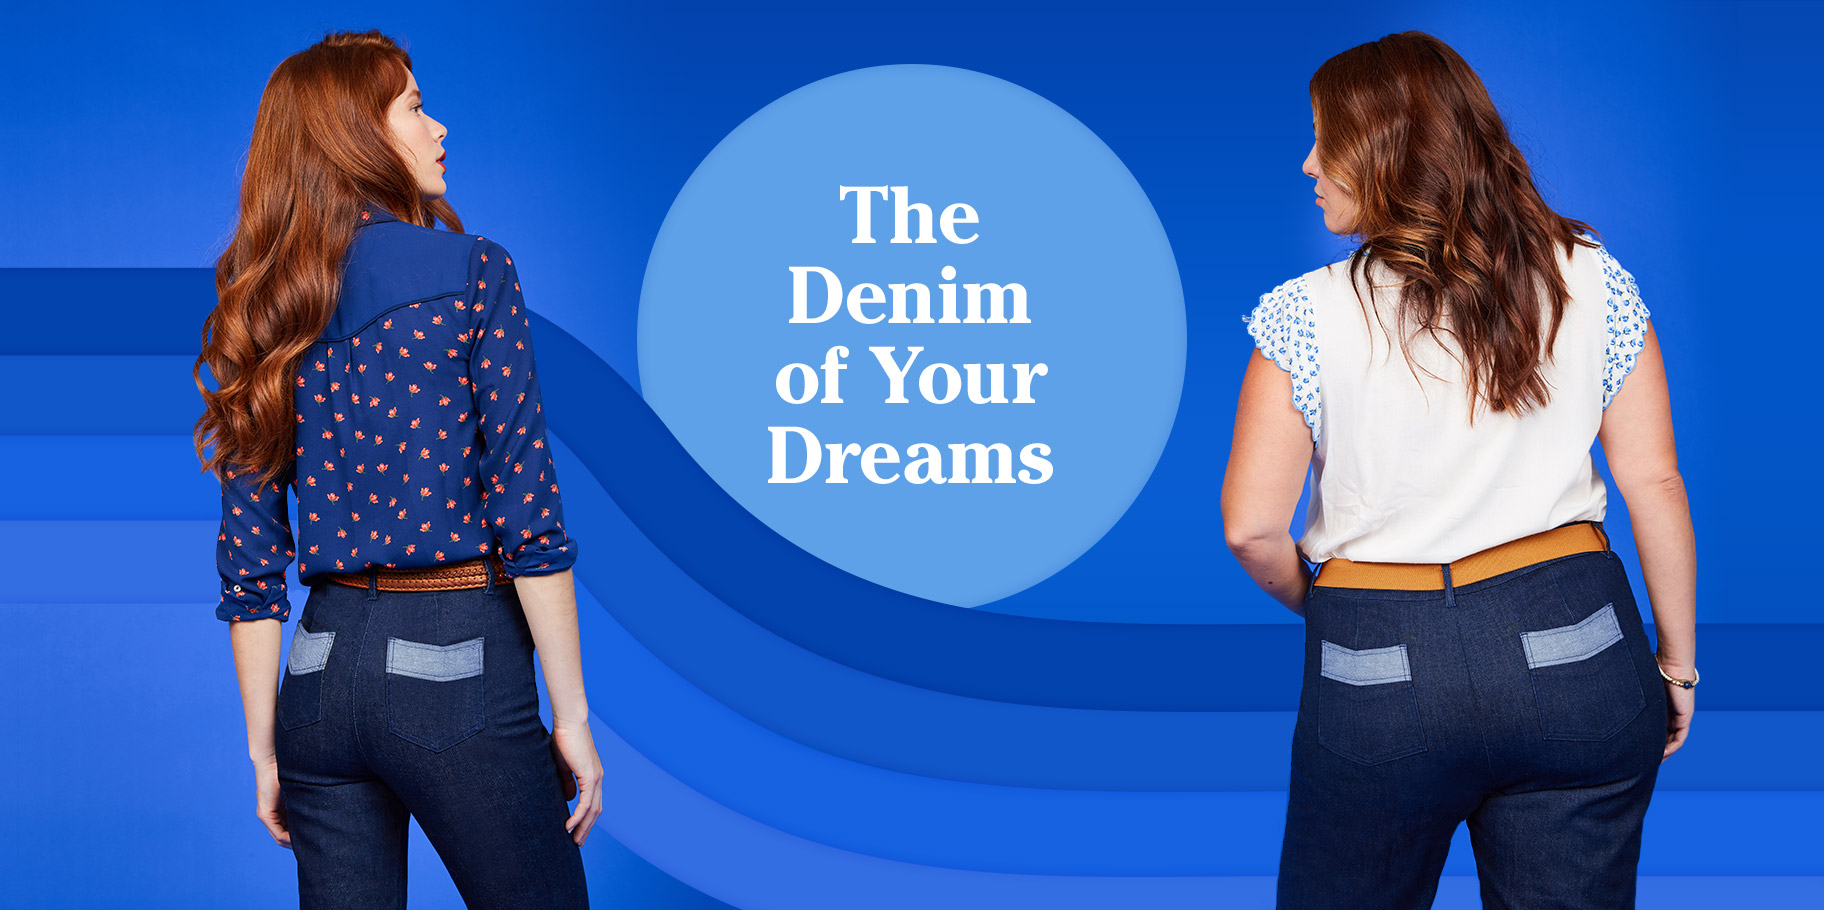 The Denim of Your Dreams